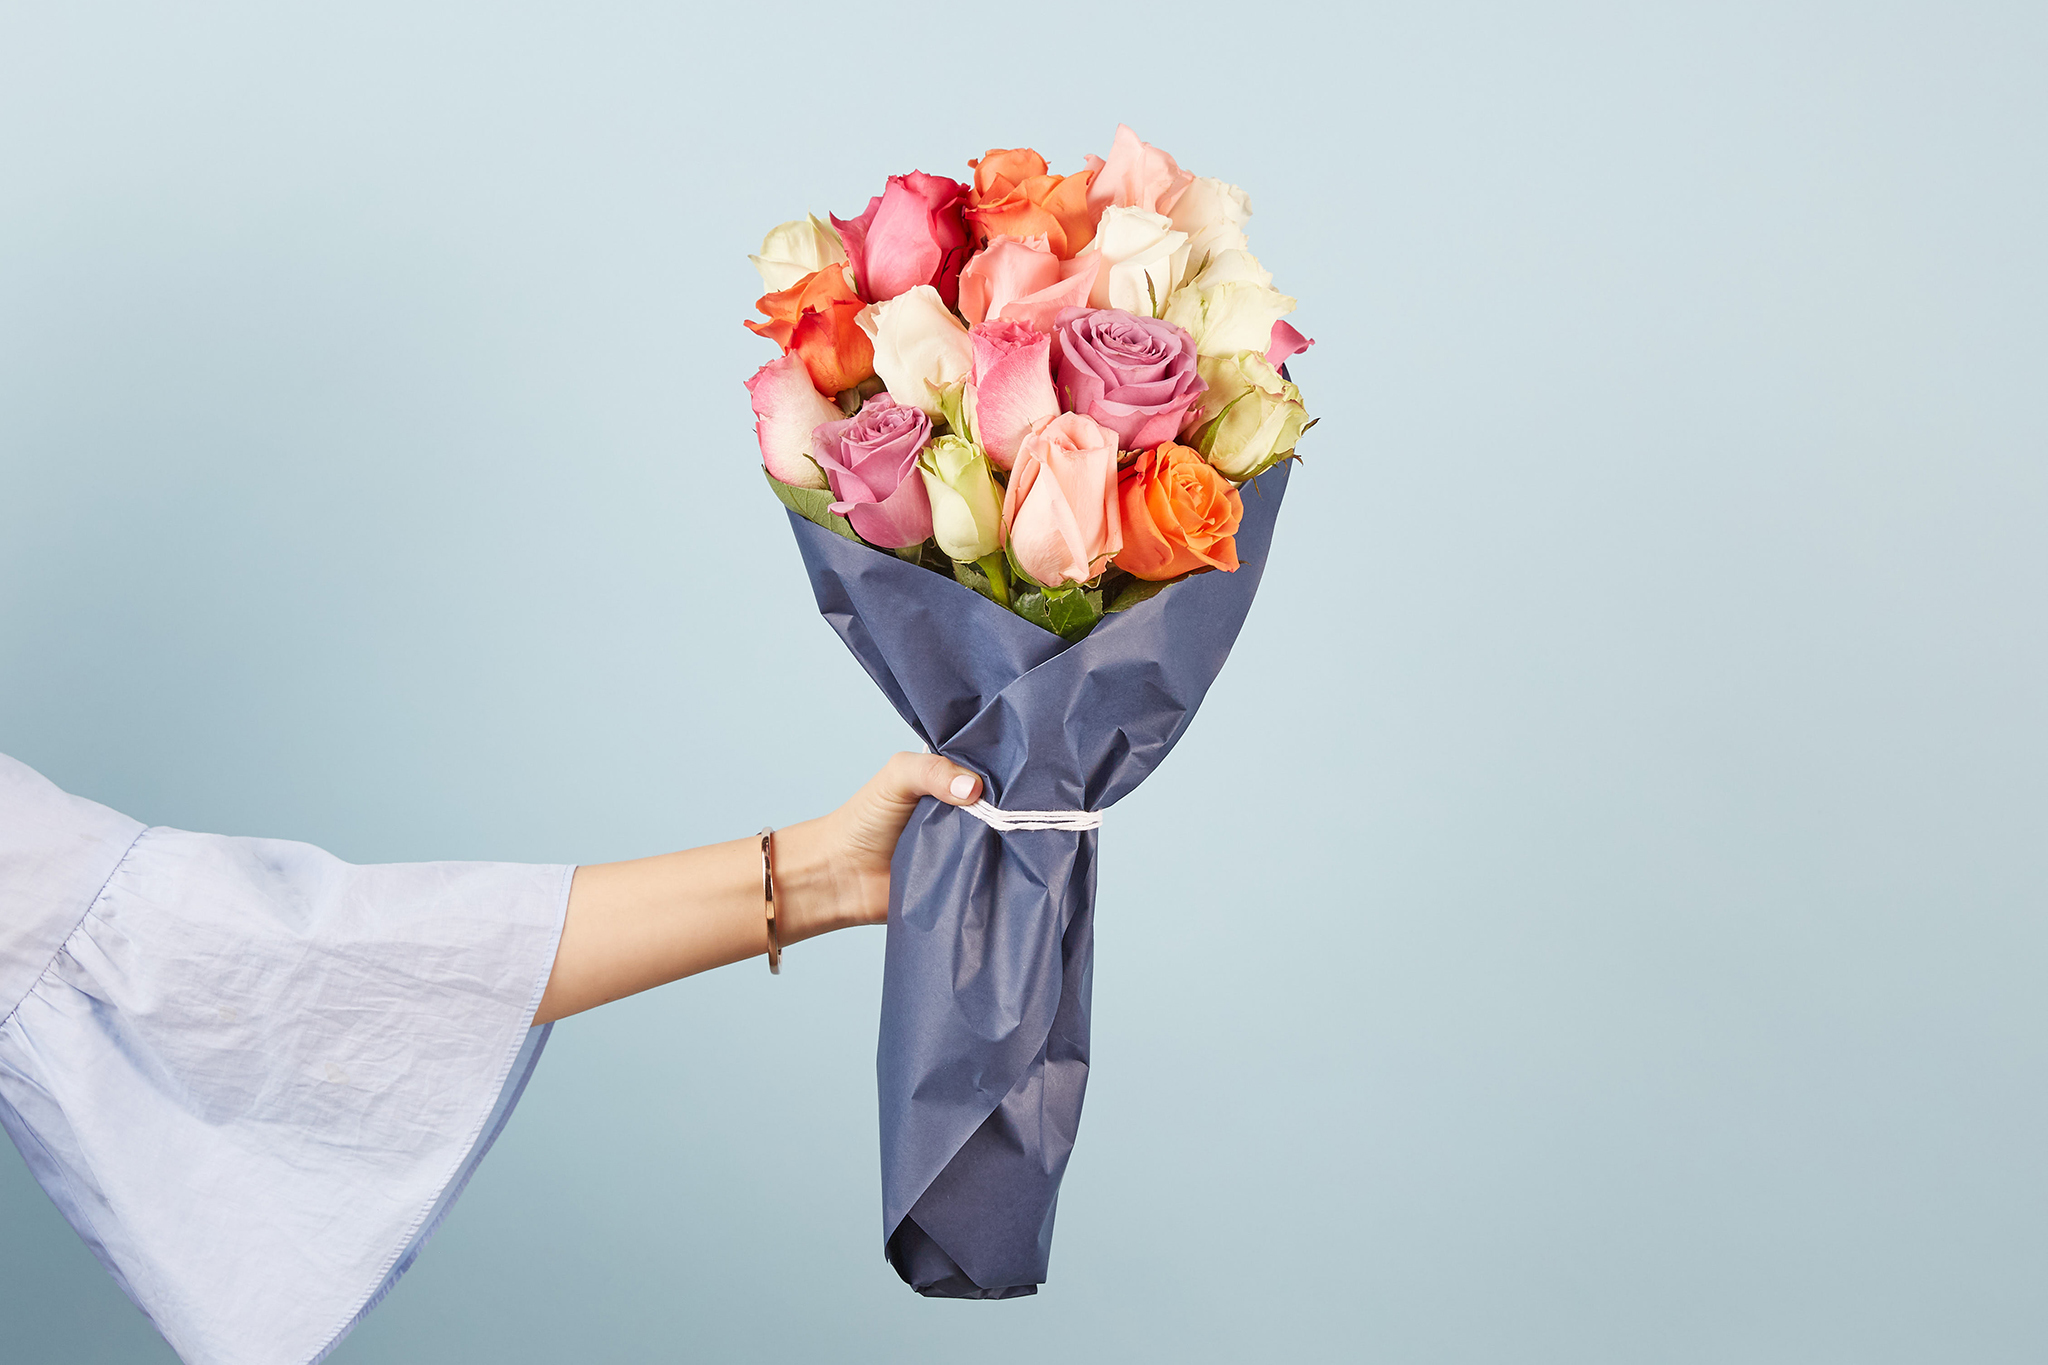 9 Best Flower Delivery Services In Los Angeles